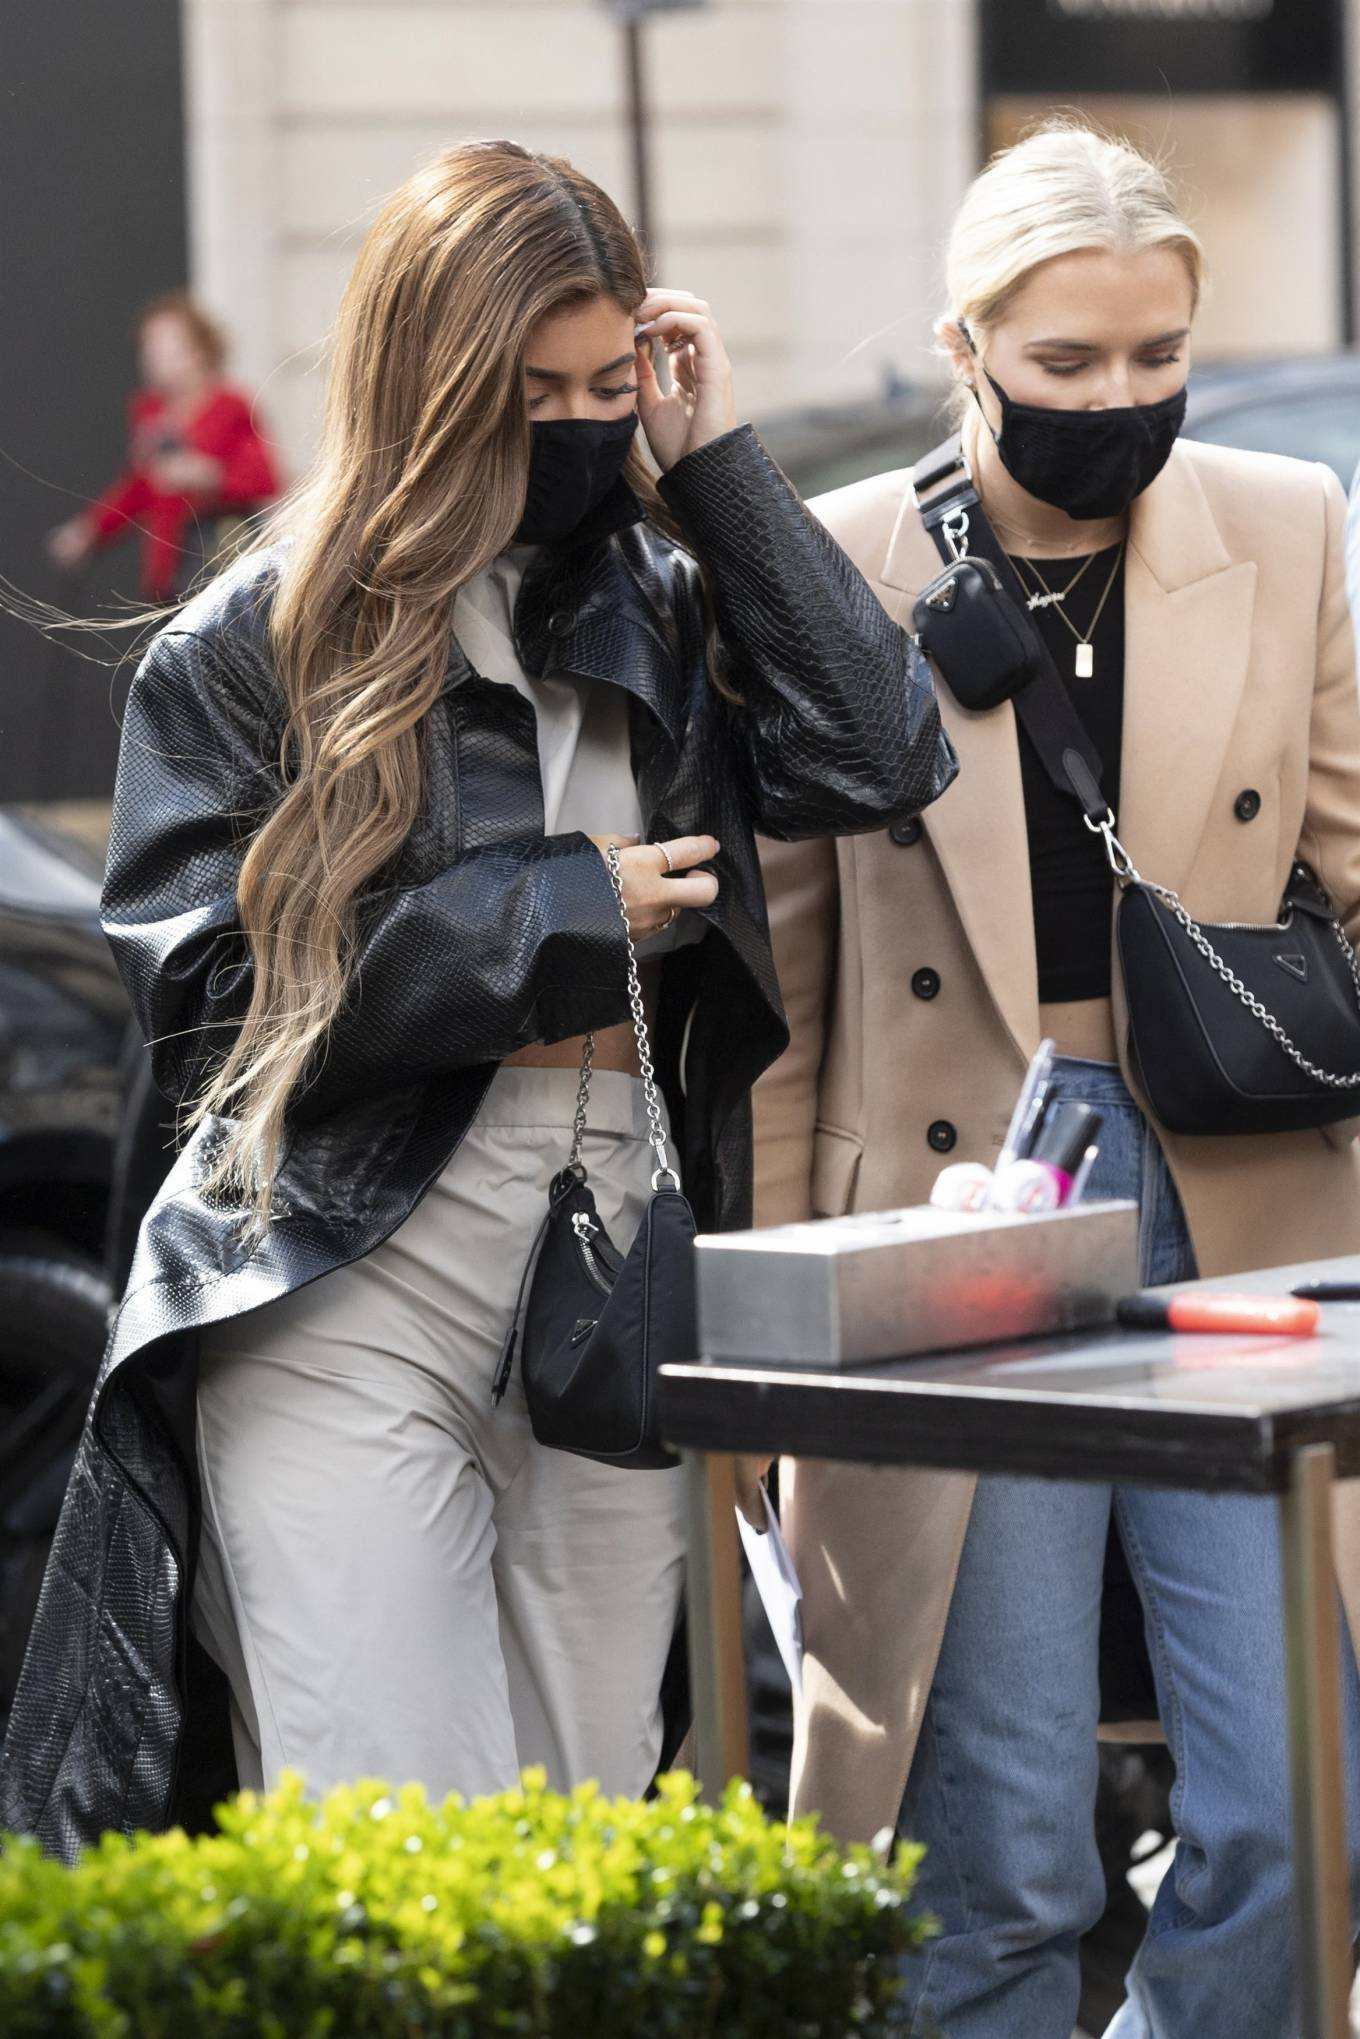 Kylie Jenner rocking a oversized black open front leather trench coat with a snakeskin material, extra long sleeves and peak lapel collar